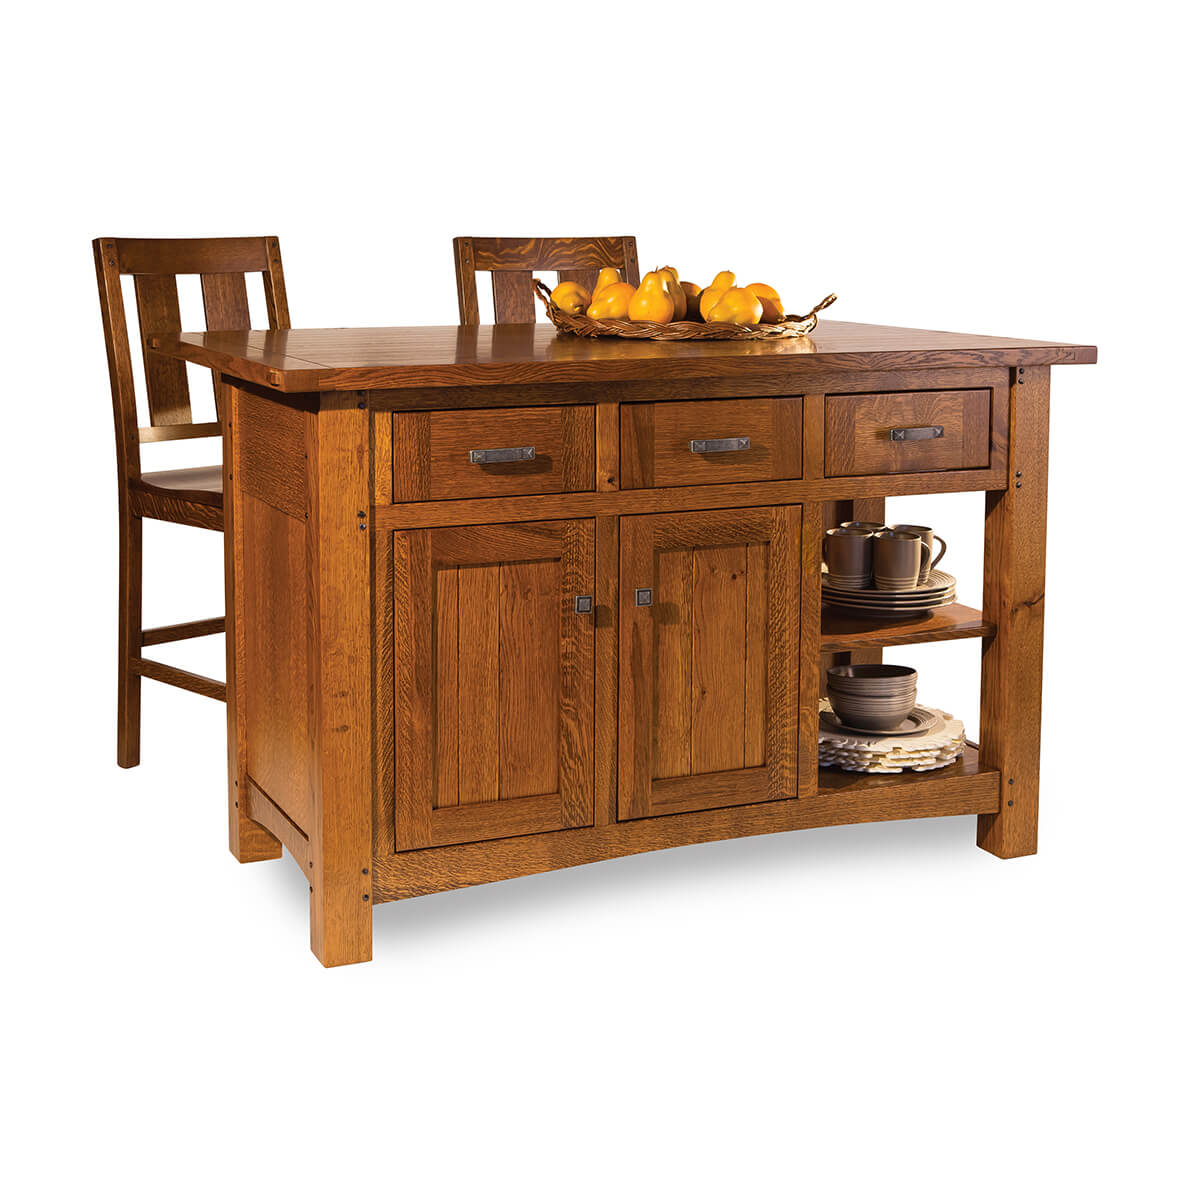 American Made Kitchen Furniture | Weavers Farm and Furniture ...